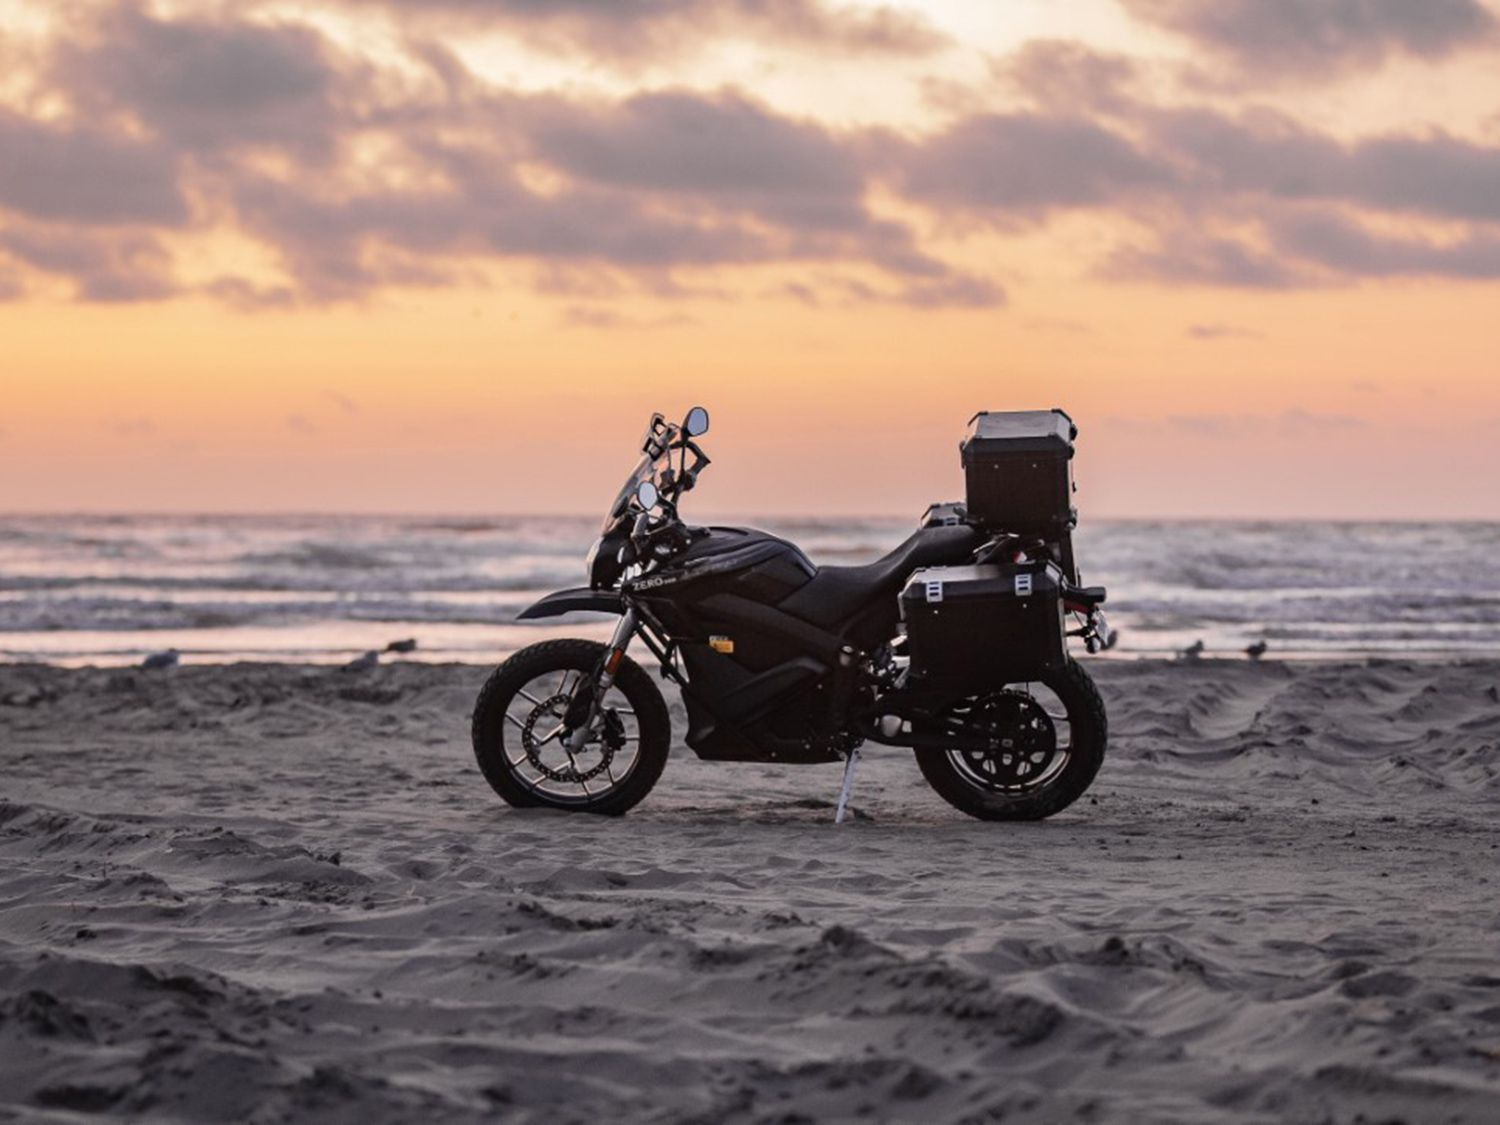 If you are looking to go a little ways off the beaten path, then the 2020 Zero DSR Black Forest might be the bike for you. Think of it as a legitimate entry-level adventure motorcycle that just happens to be electric.